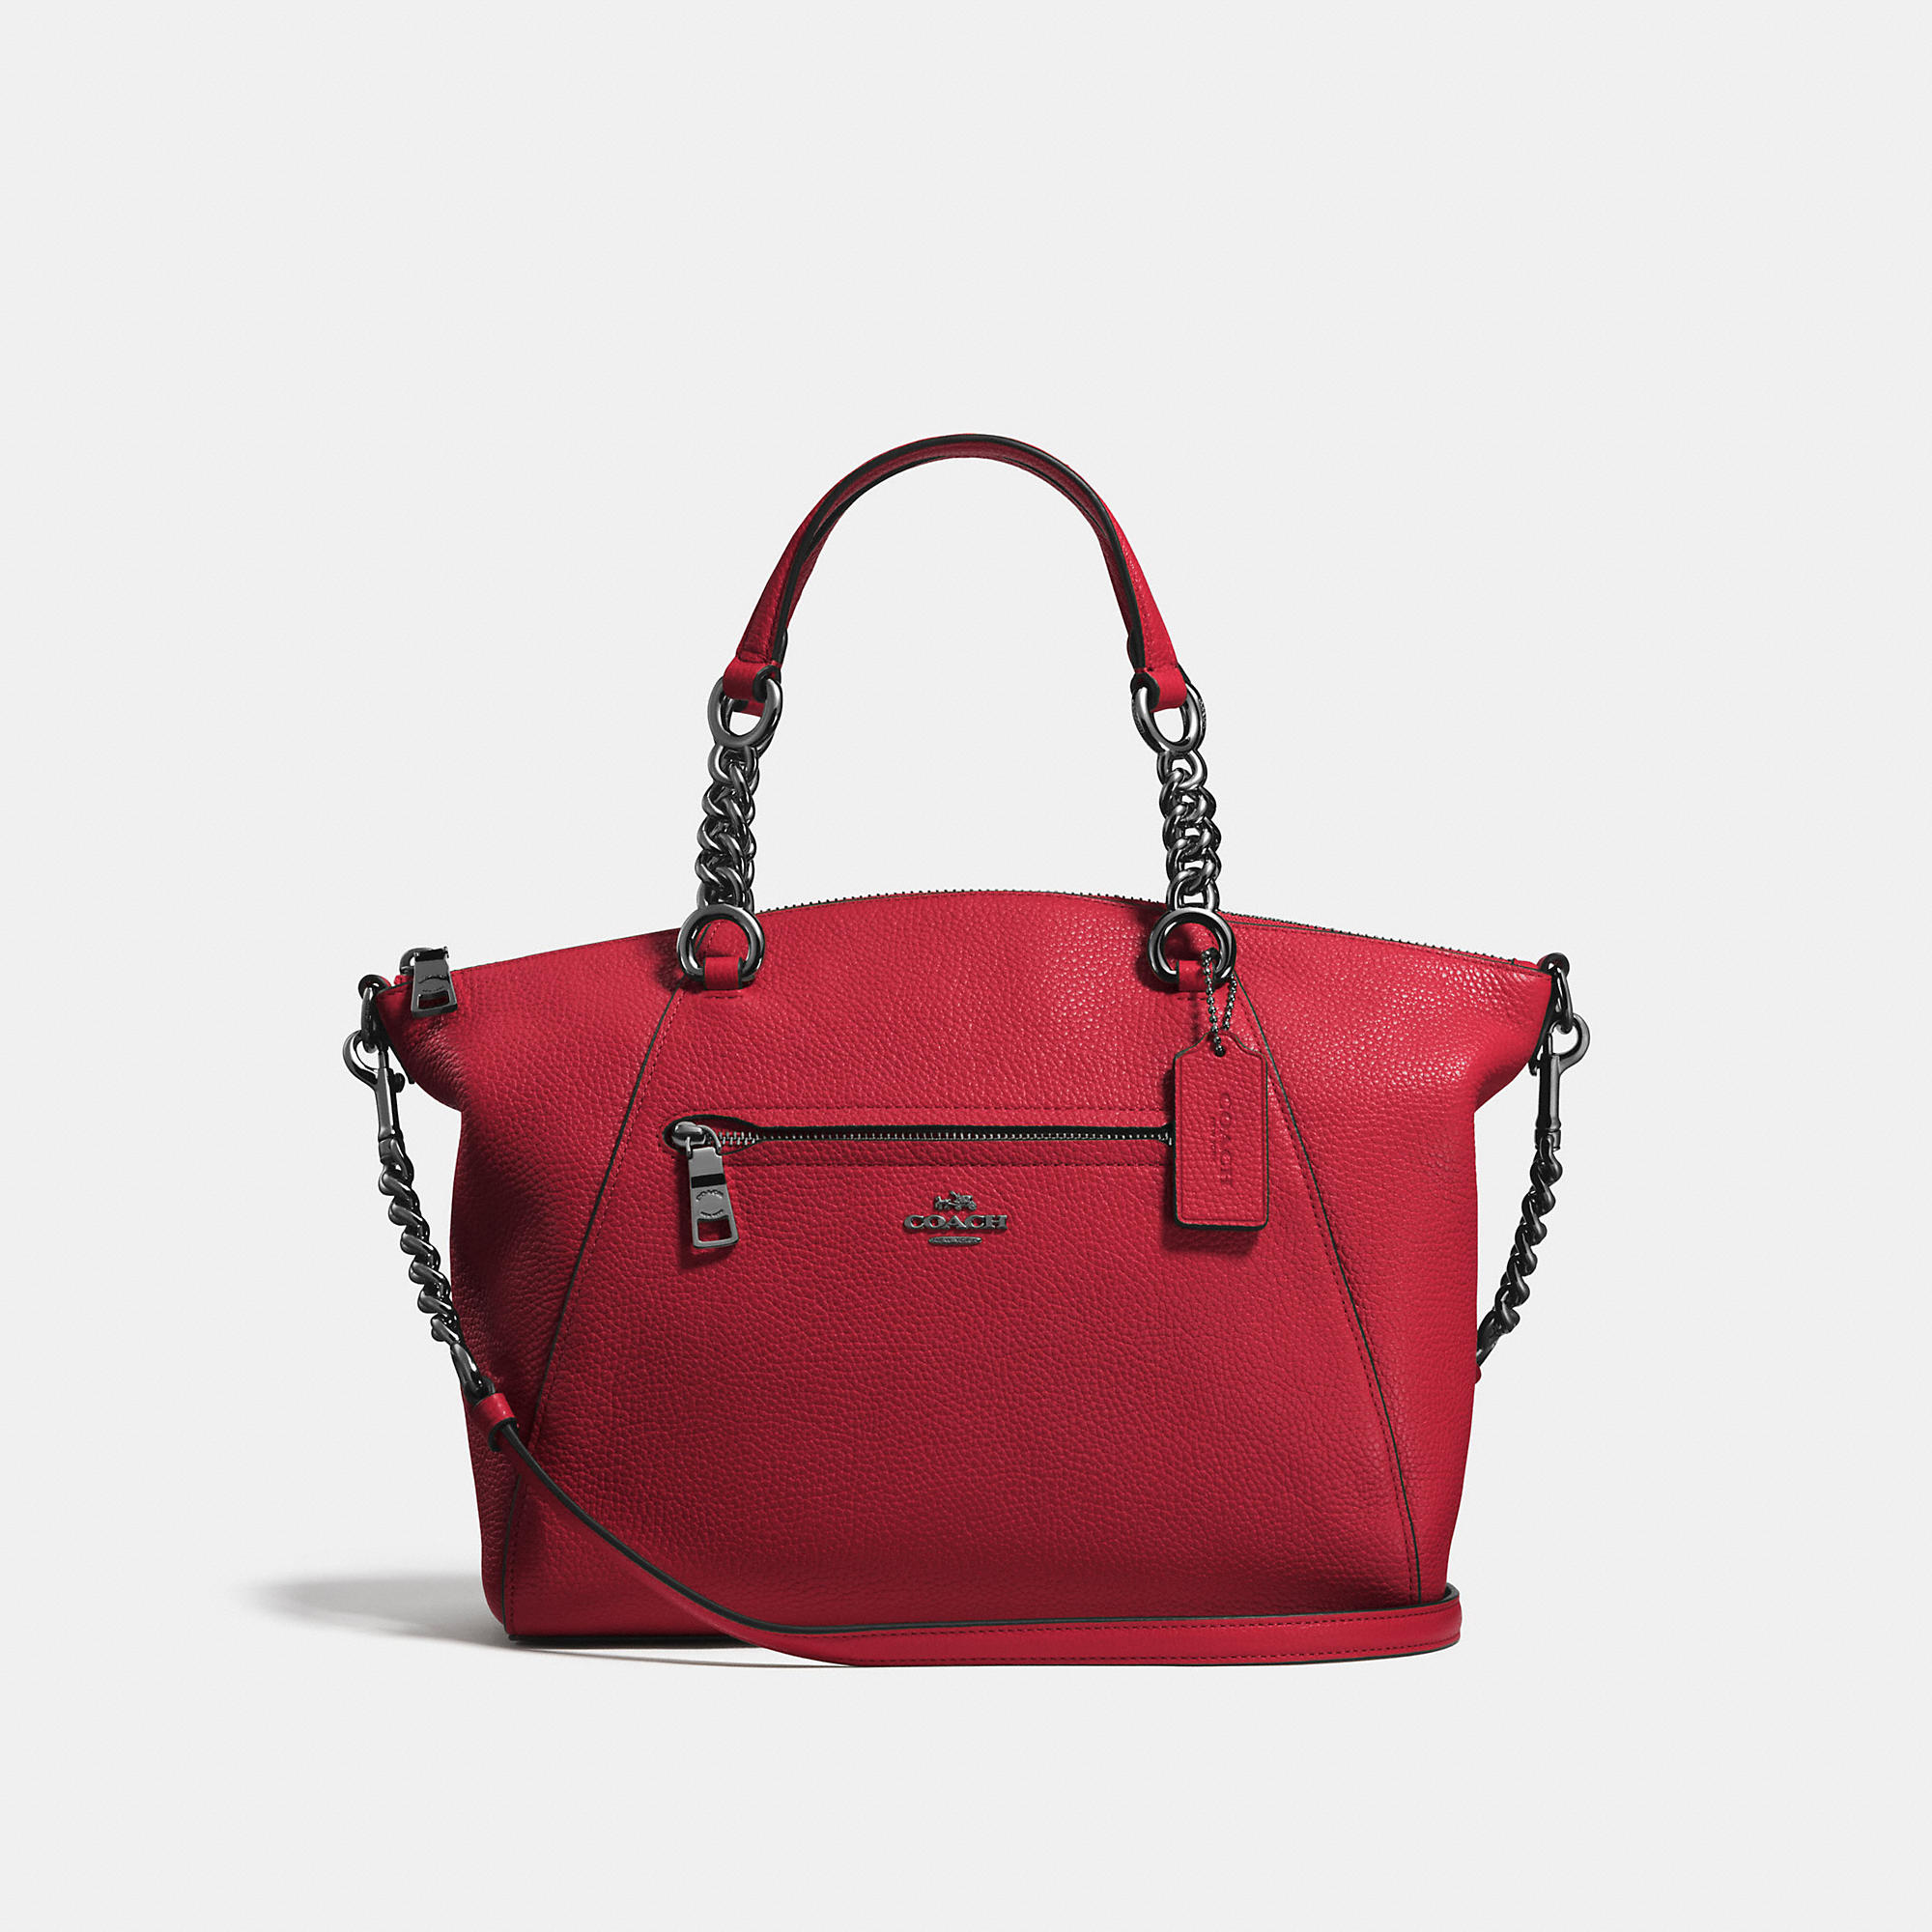 Coach Chain Prairie Satchel In Polished Pebble Leather